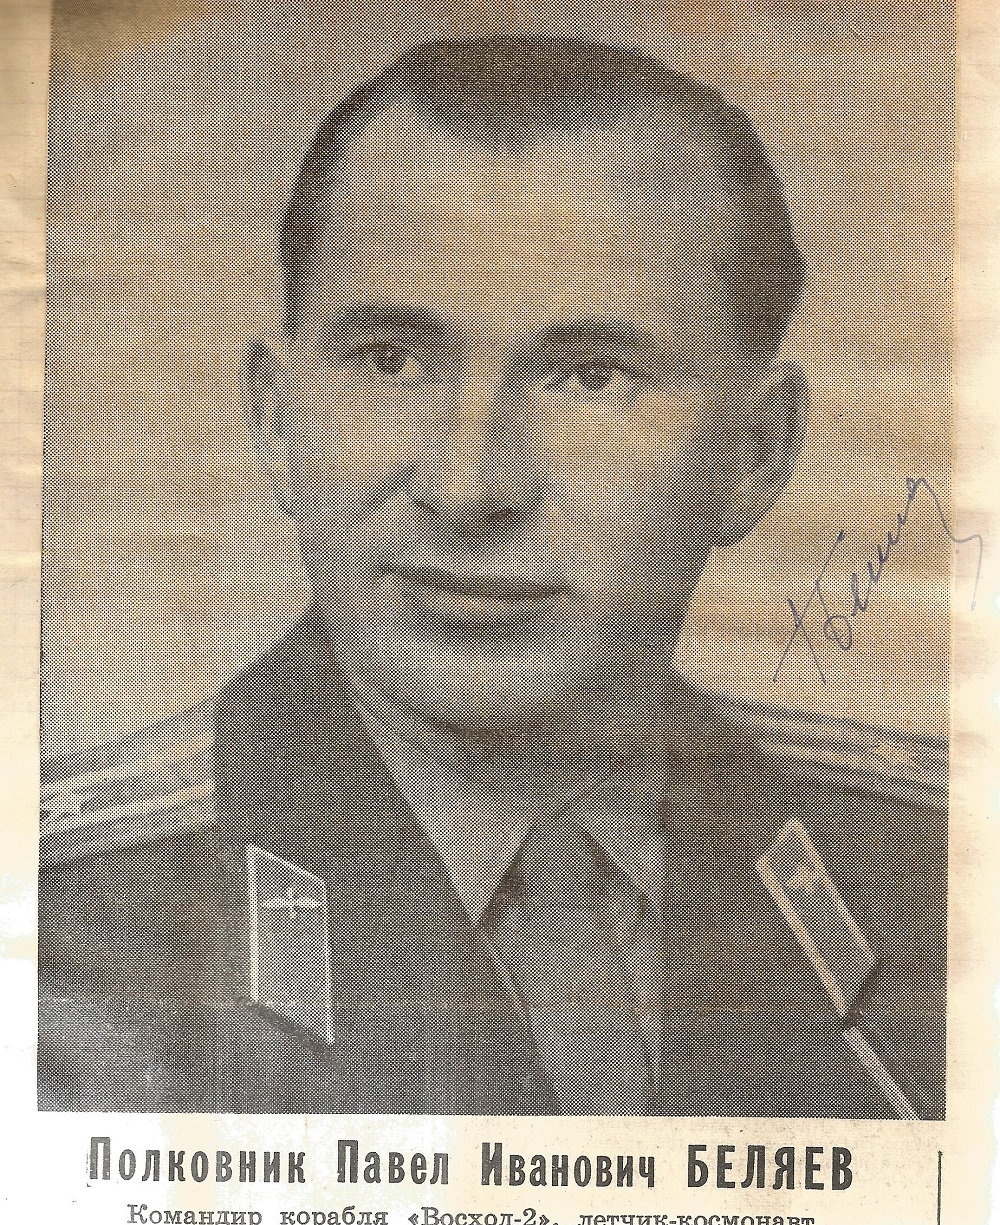 1950/60s Russian Cosmonauts multiple signed hard backed scrapbook compiled by a worker at Baikonur - Image 19 of 22